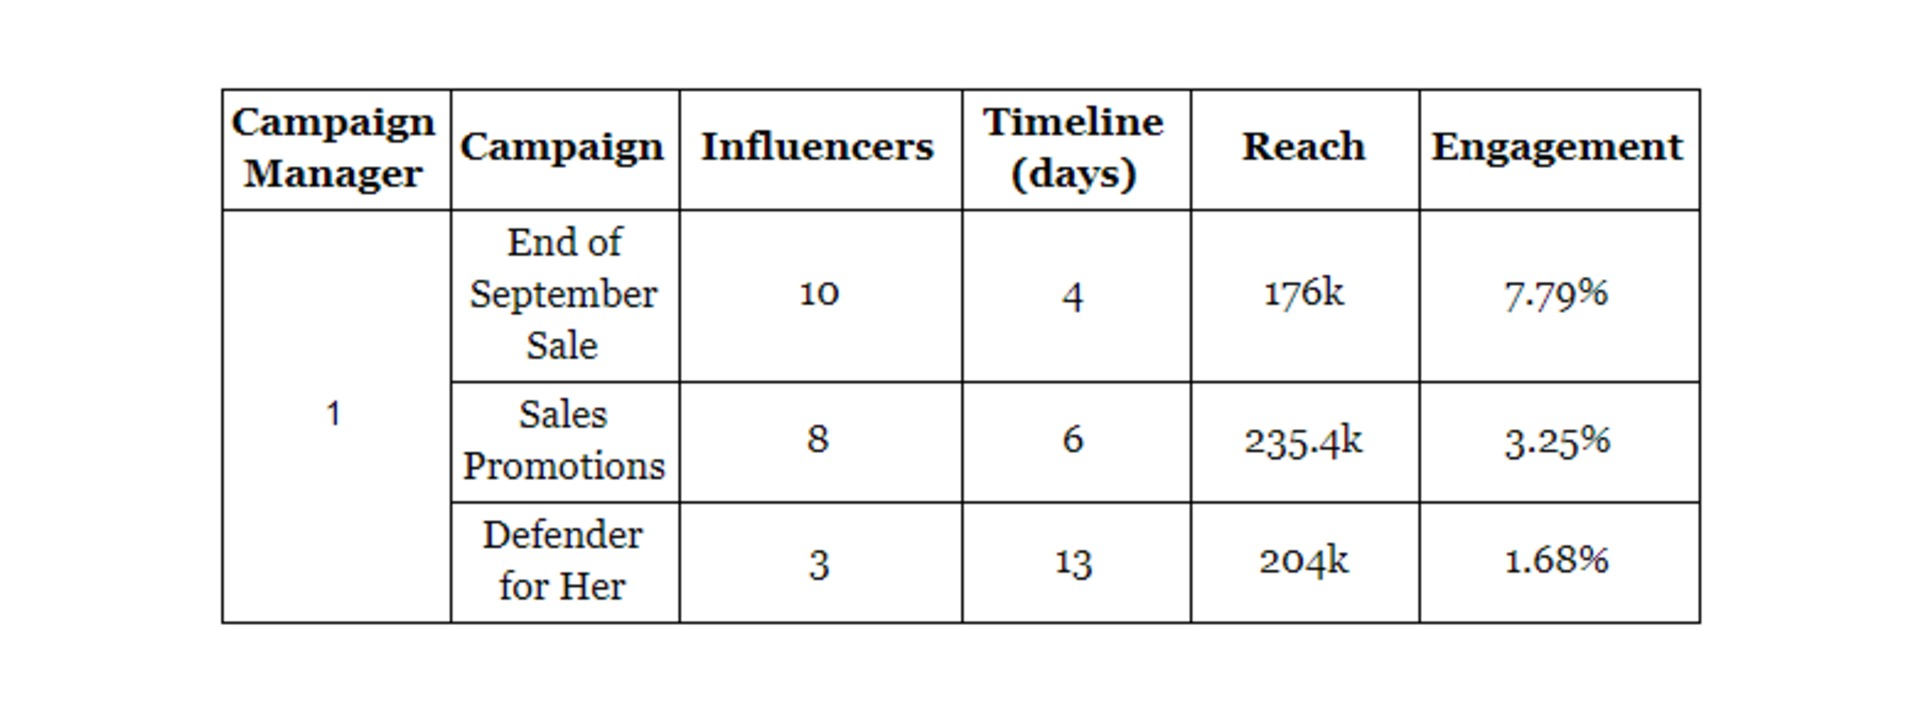 Winkl on Influencer Marketing - results